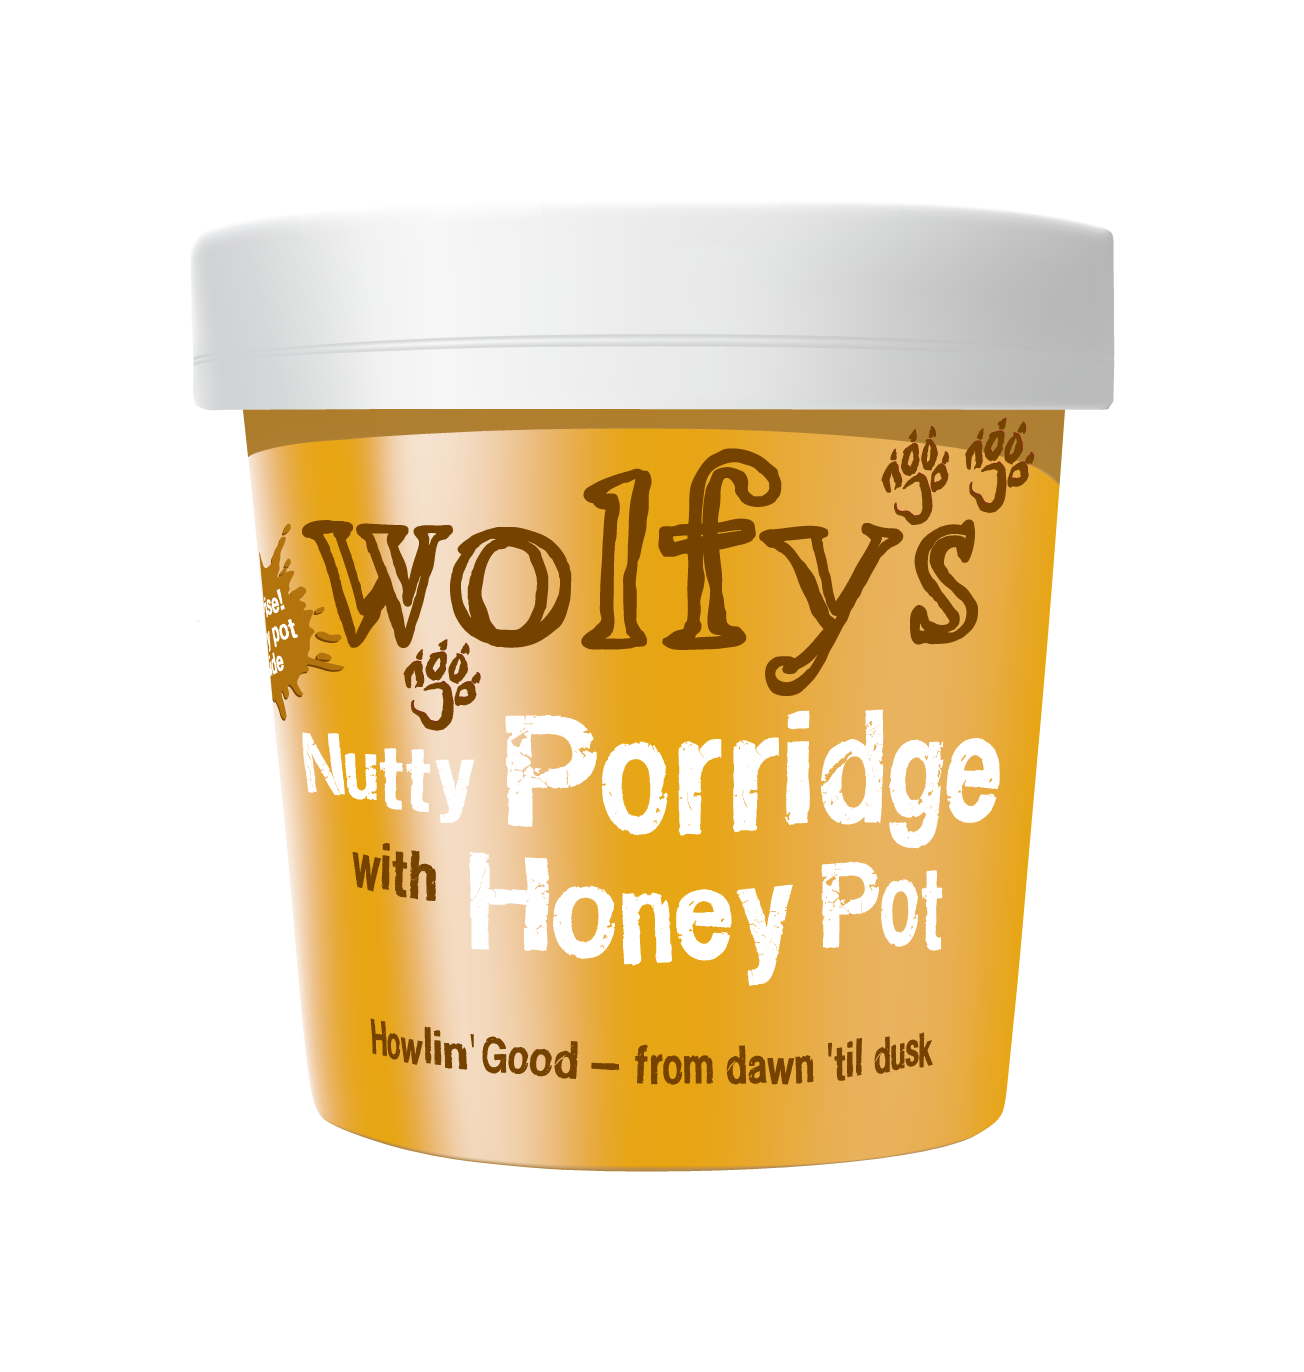 Wolfy's Nutty Porridge with Honey Pot